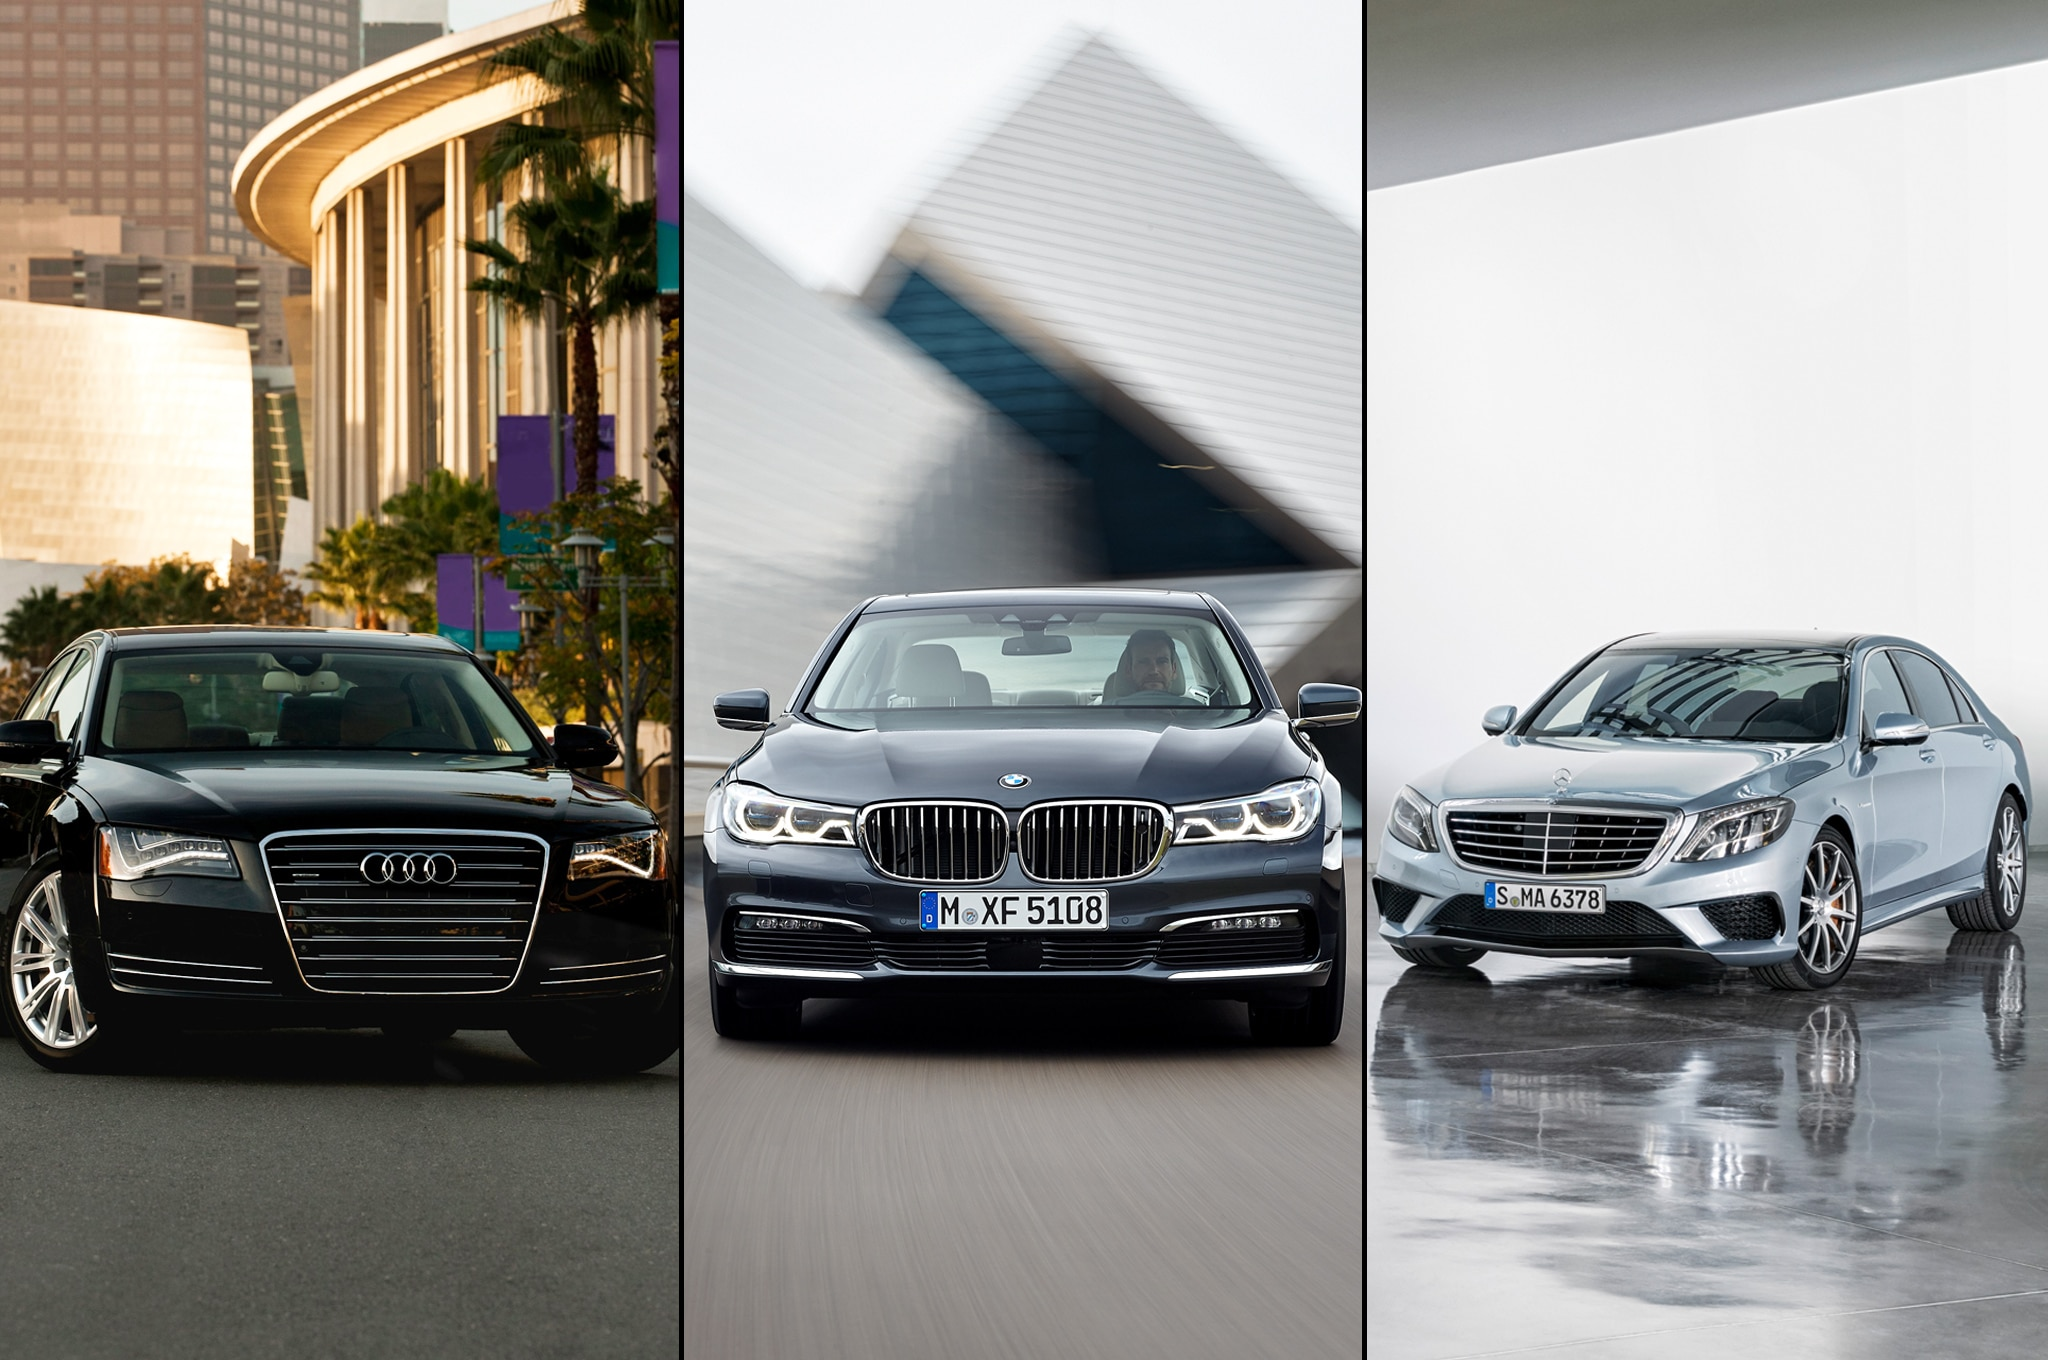 Audi vs bmw vs mercedes benz in the modern era for Bmw and mercedes benz